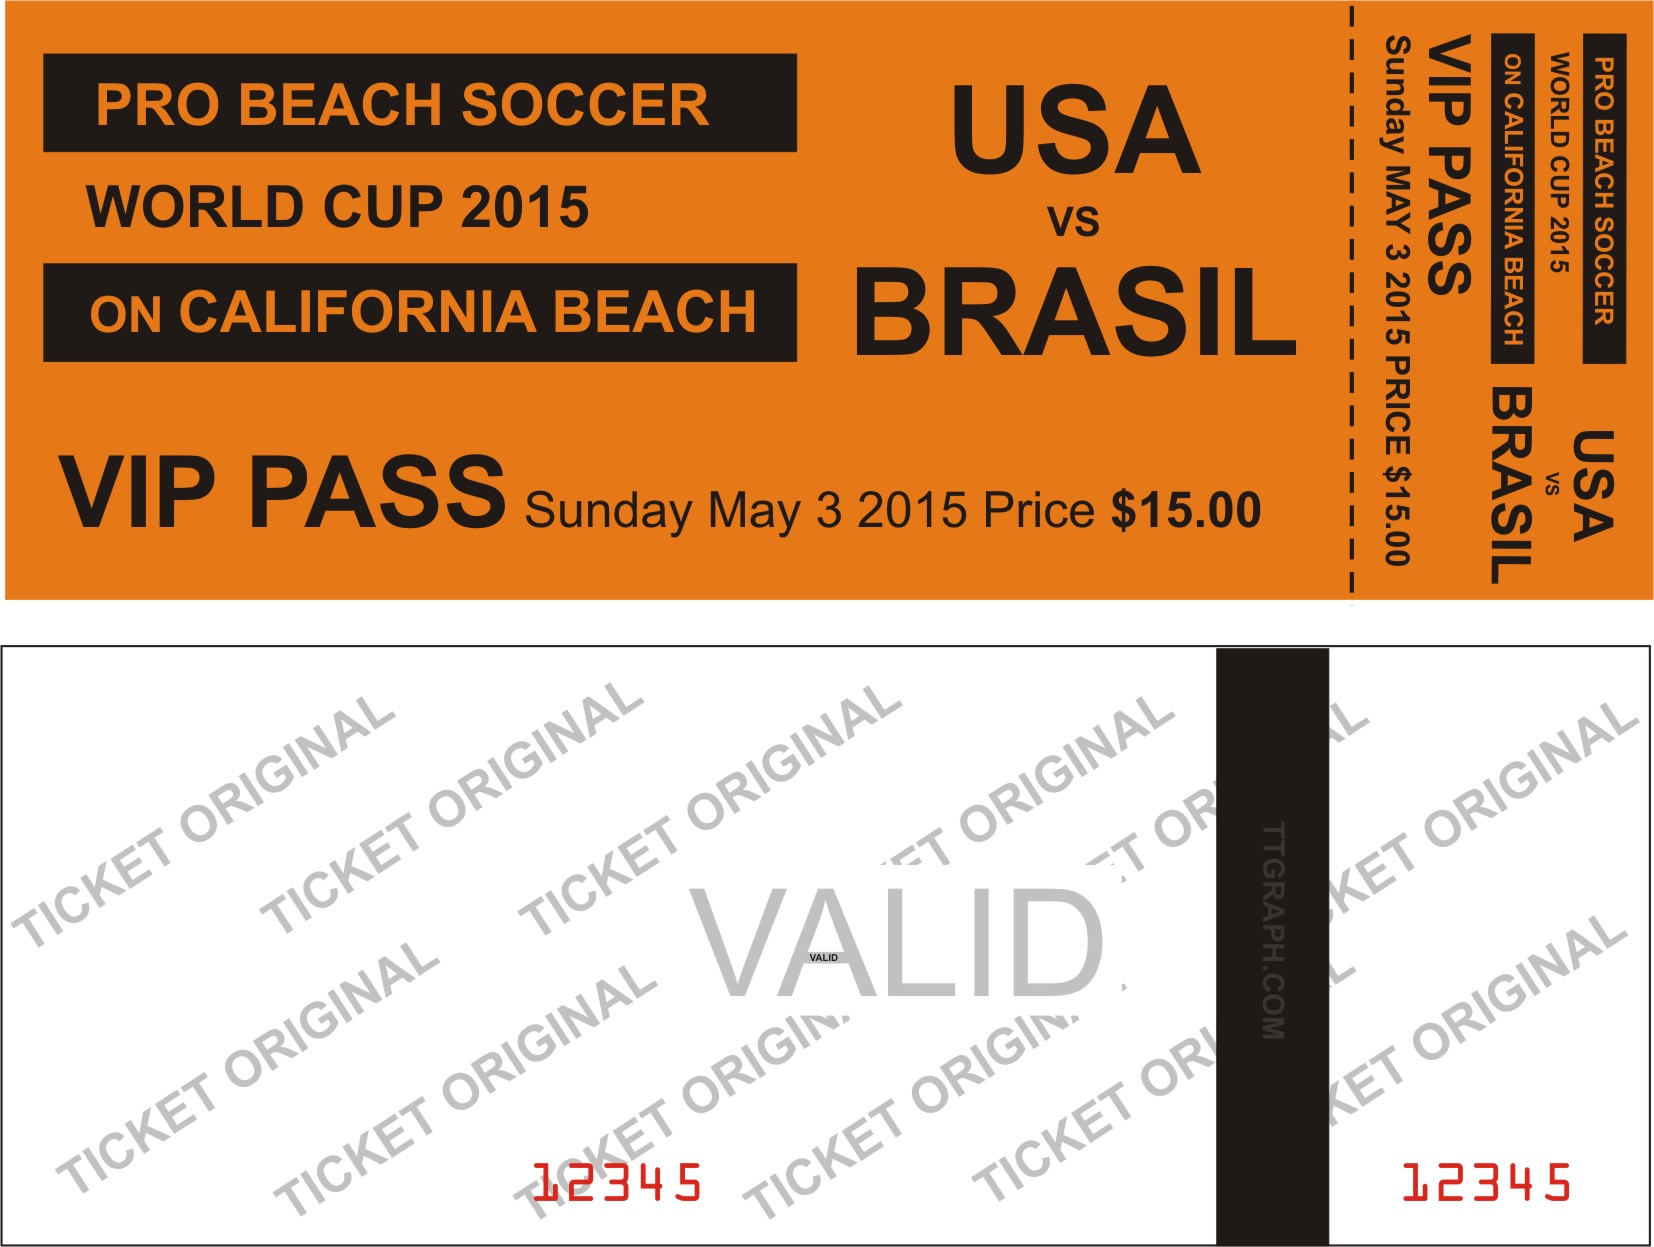 ticket samples for an event